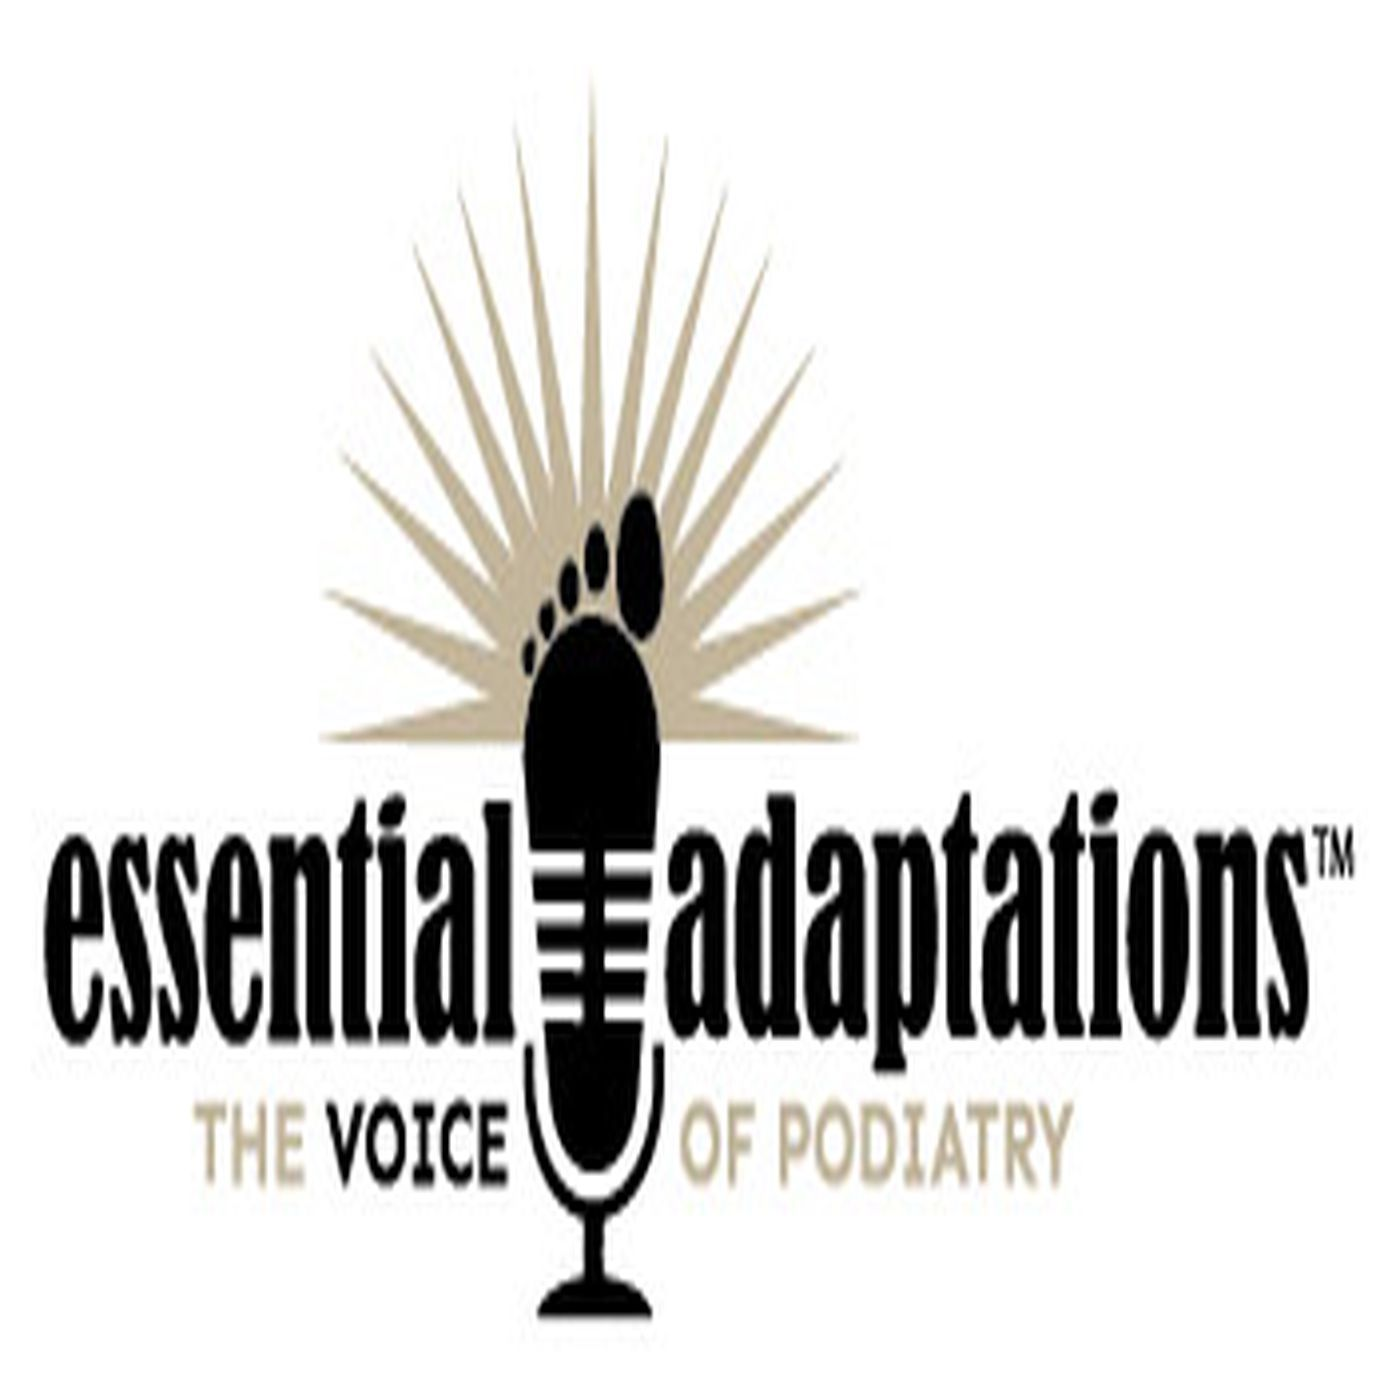 Essential Adaptations, the voice of Podiatry with Drs. John Guiliana and Jeff Frederick